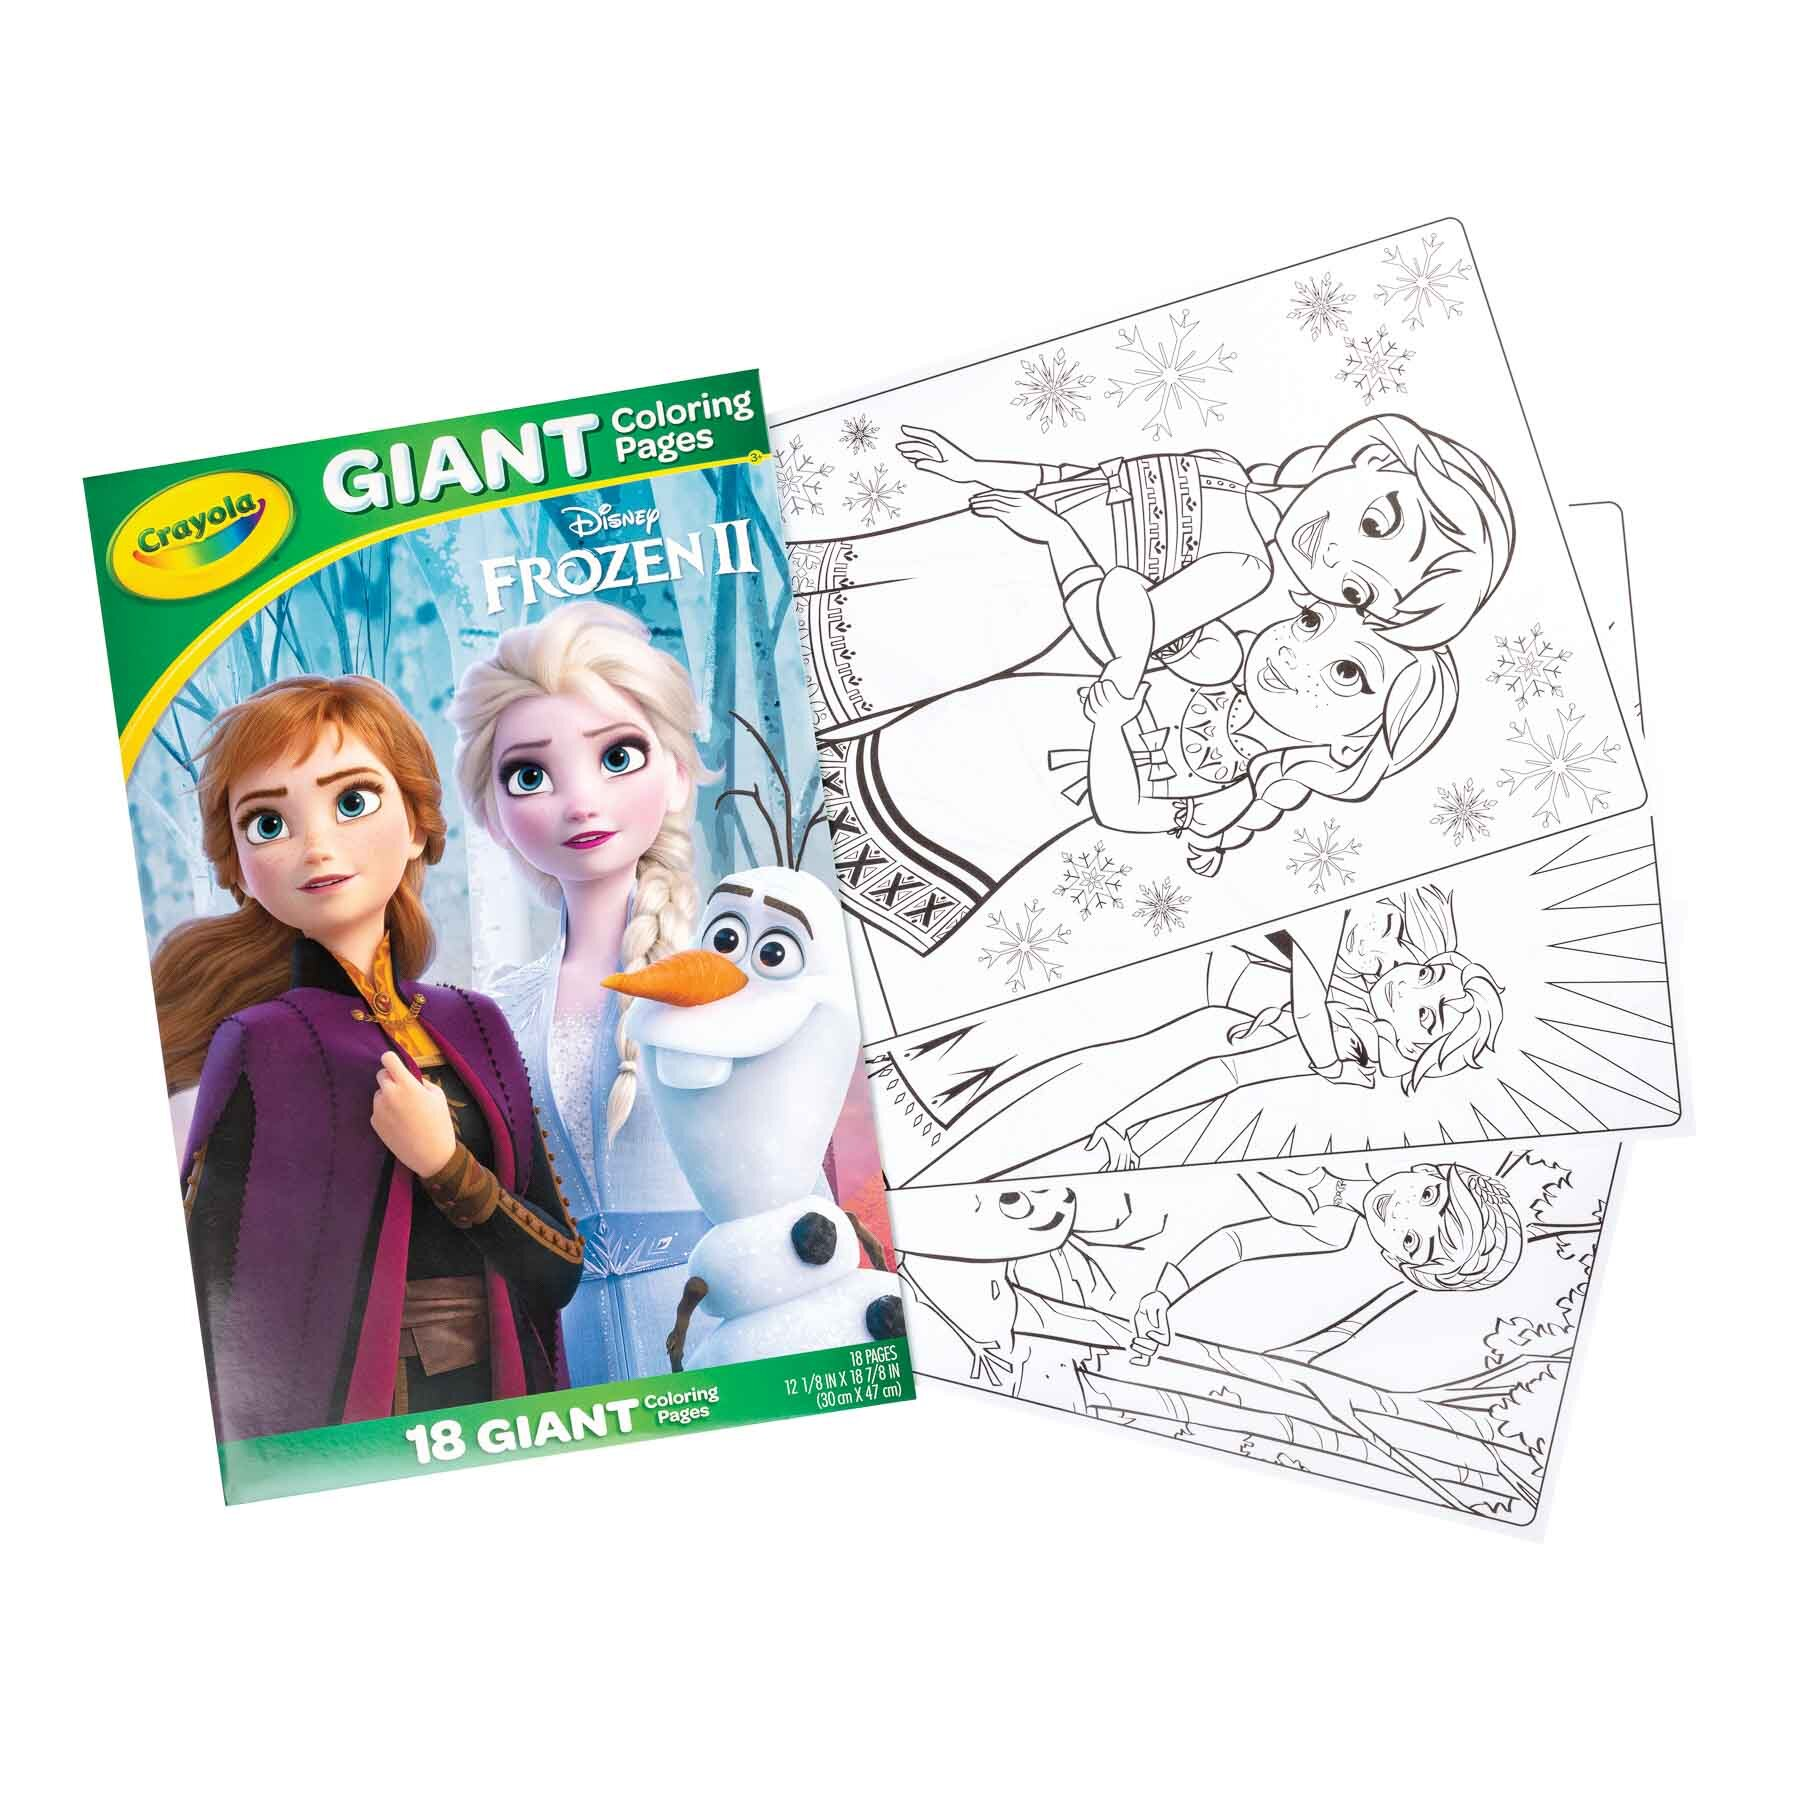 Giant Coloring Pages Frozen II front and pages - Books and publication product photography sample